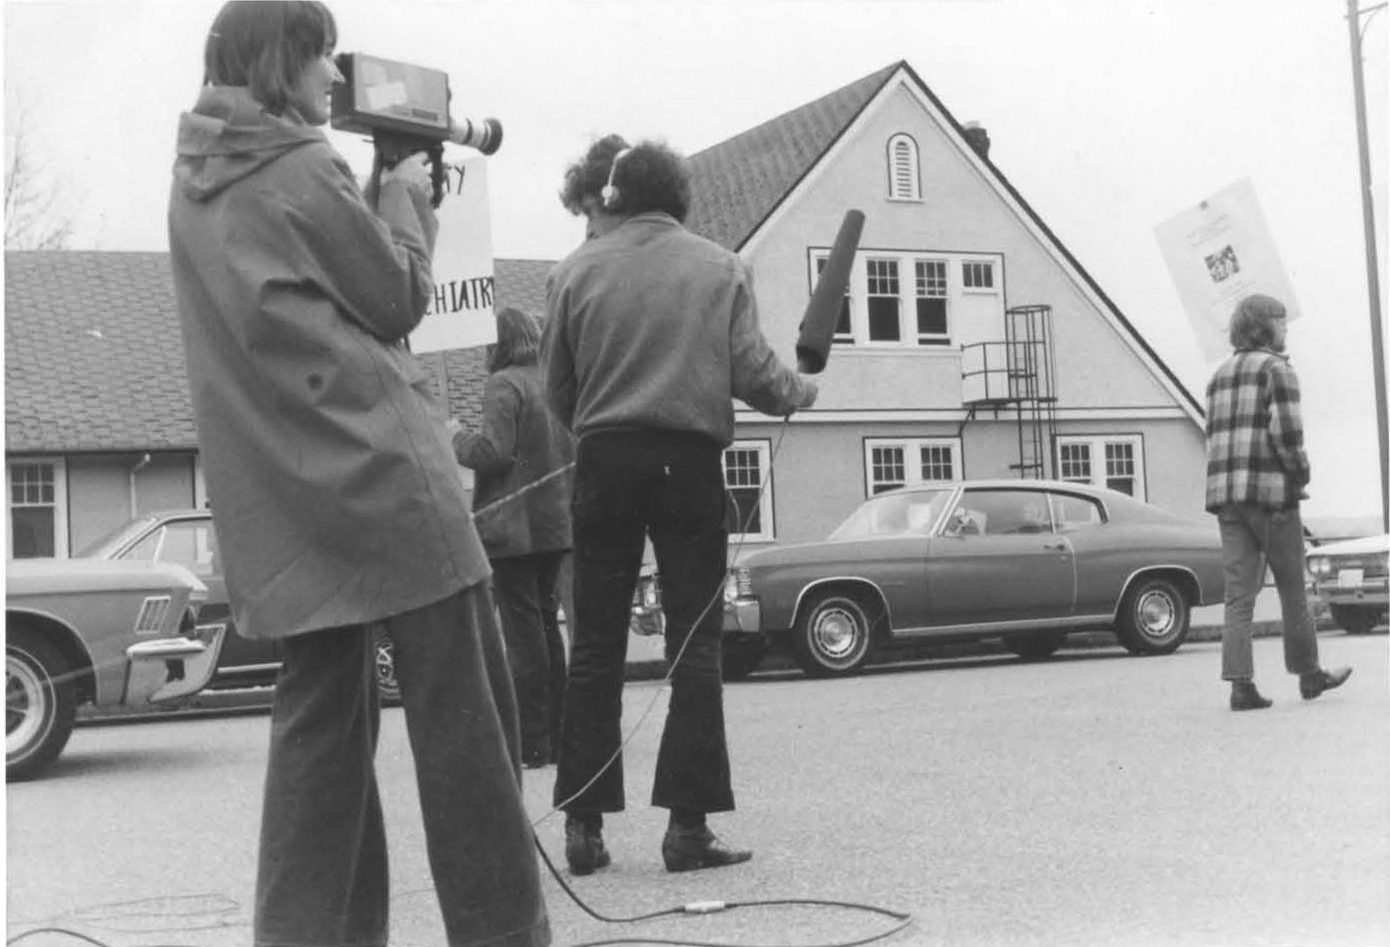 series of photos of 1970s protestors caring signs. Photo of press with camera and recording equipment.